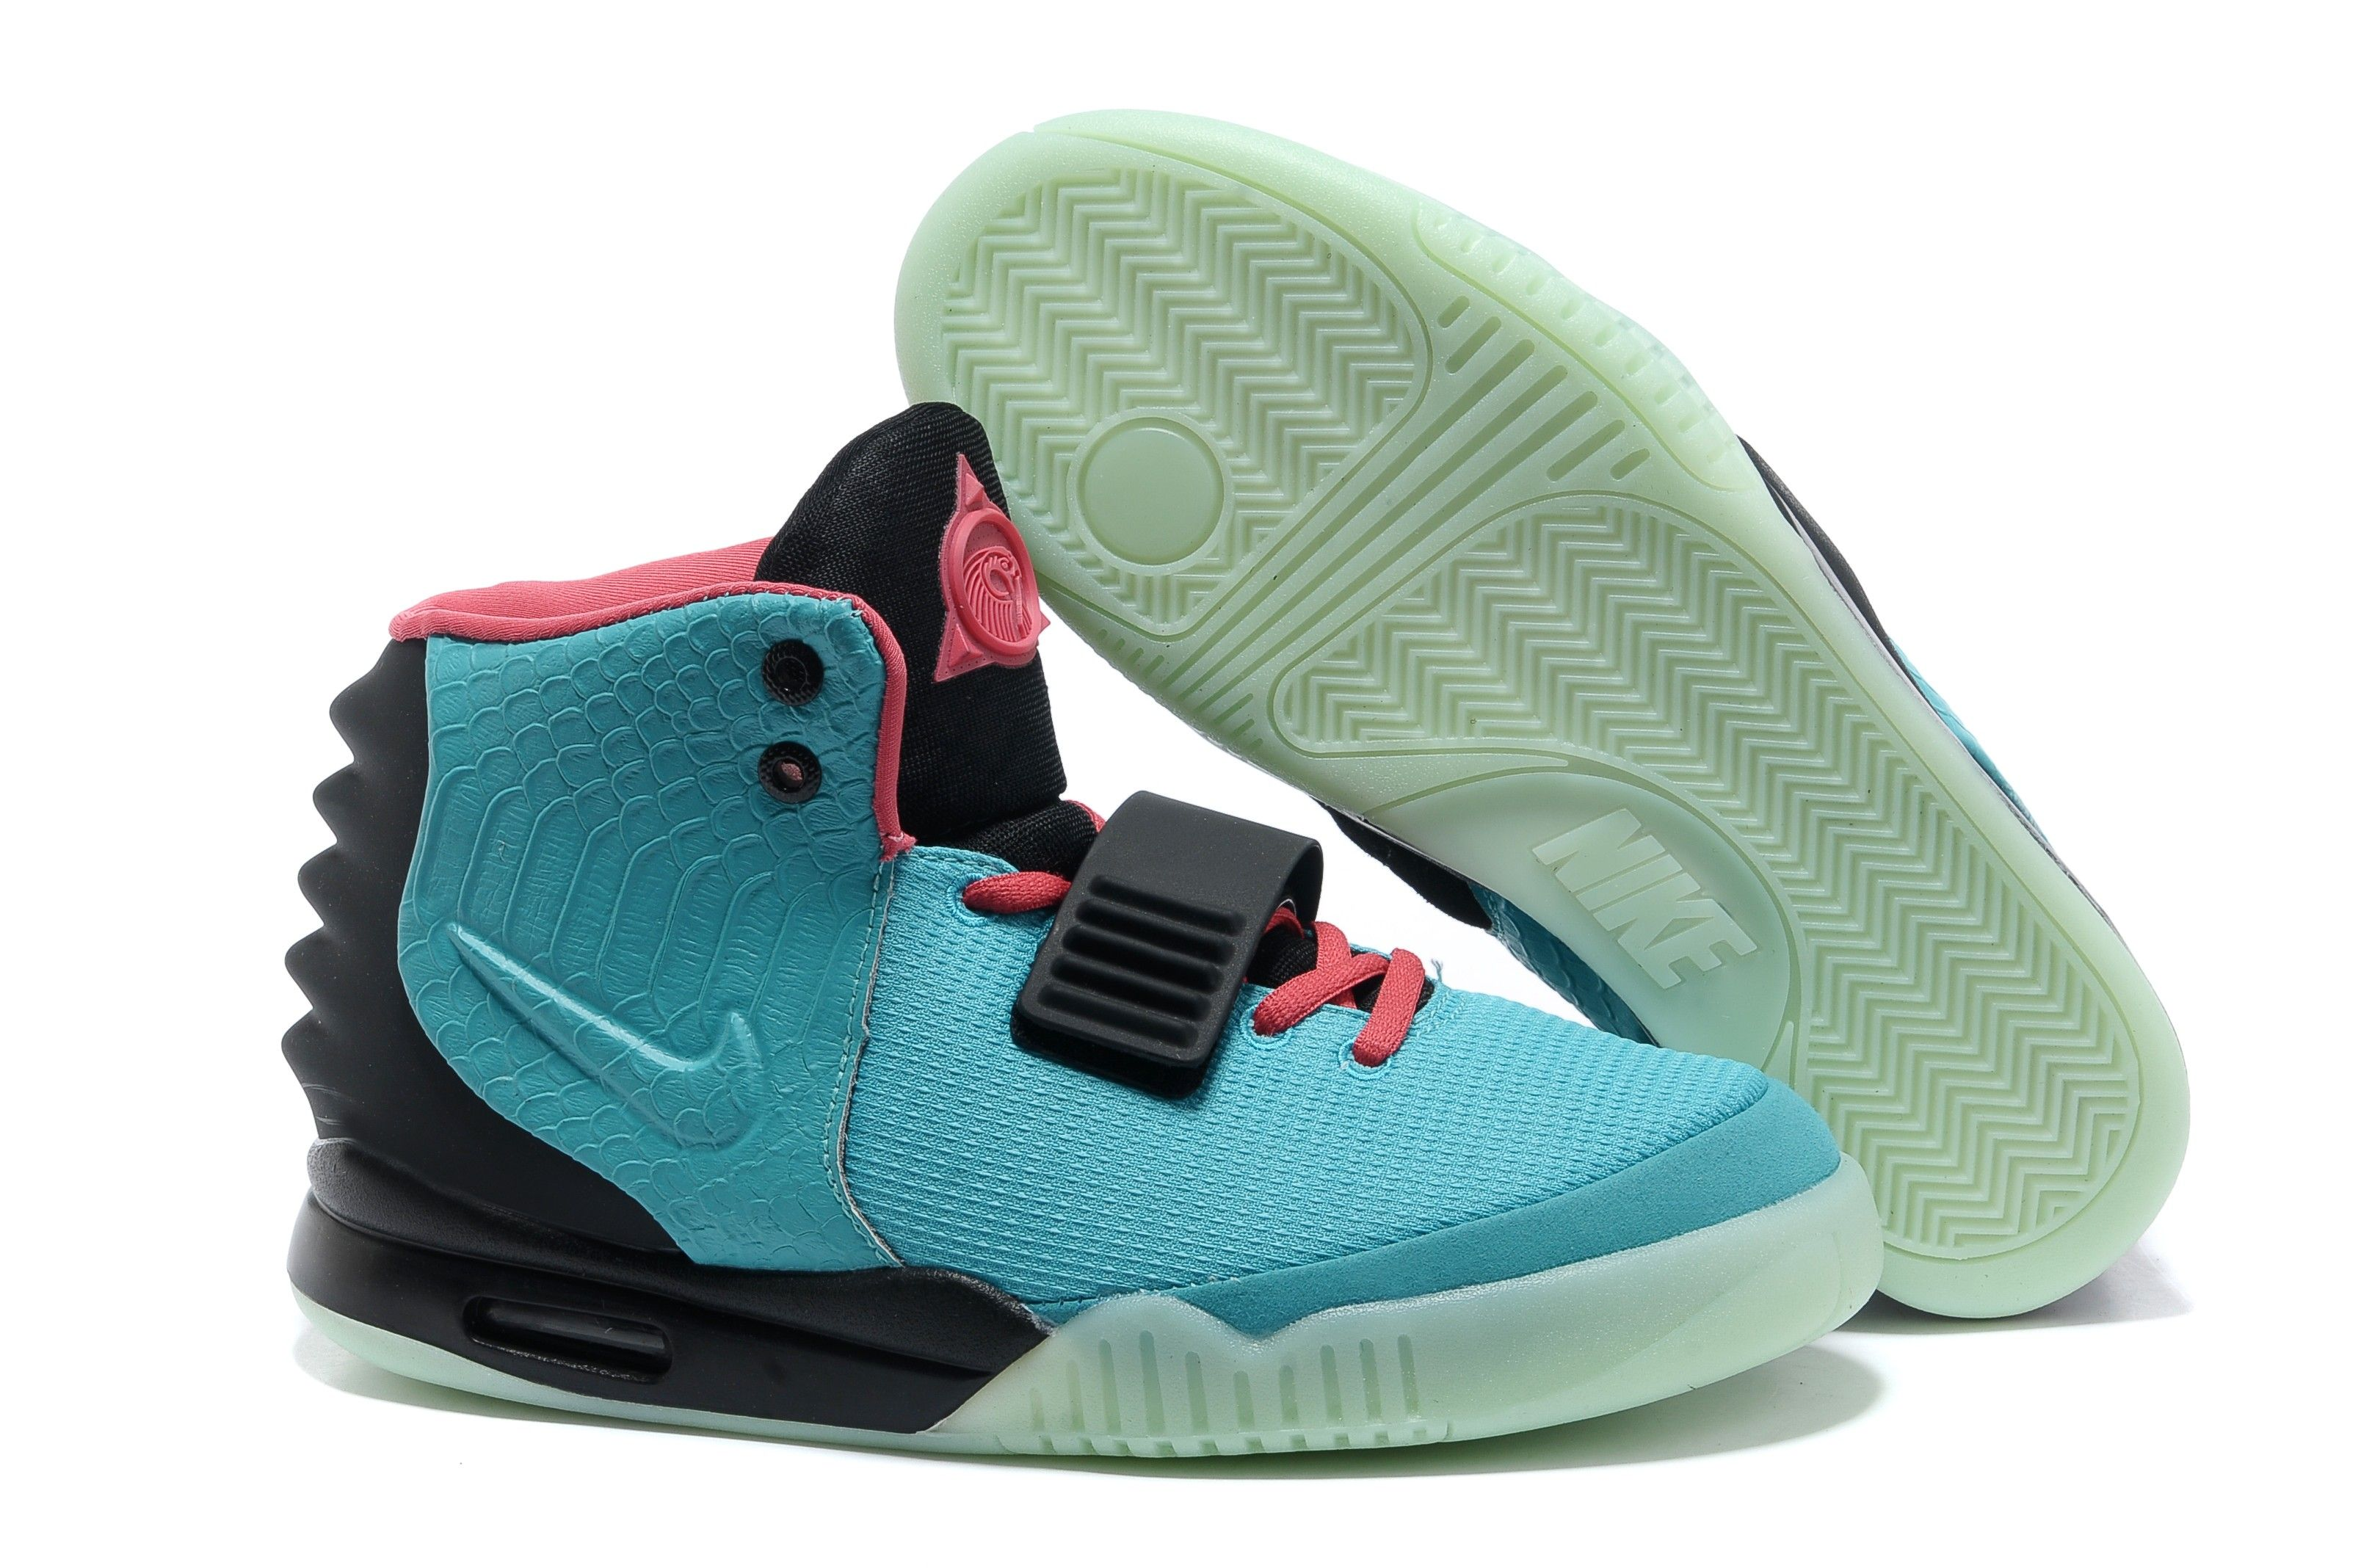 Nike Shoes Air Yeezy 2 Nrg Sneaker Green Black Men'S Cheap At The Price